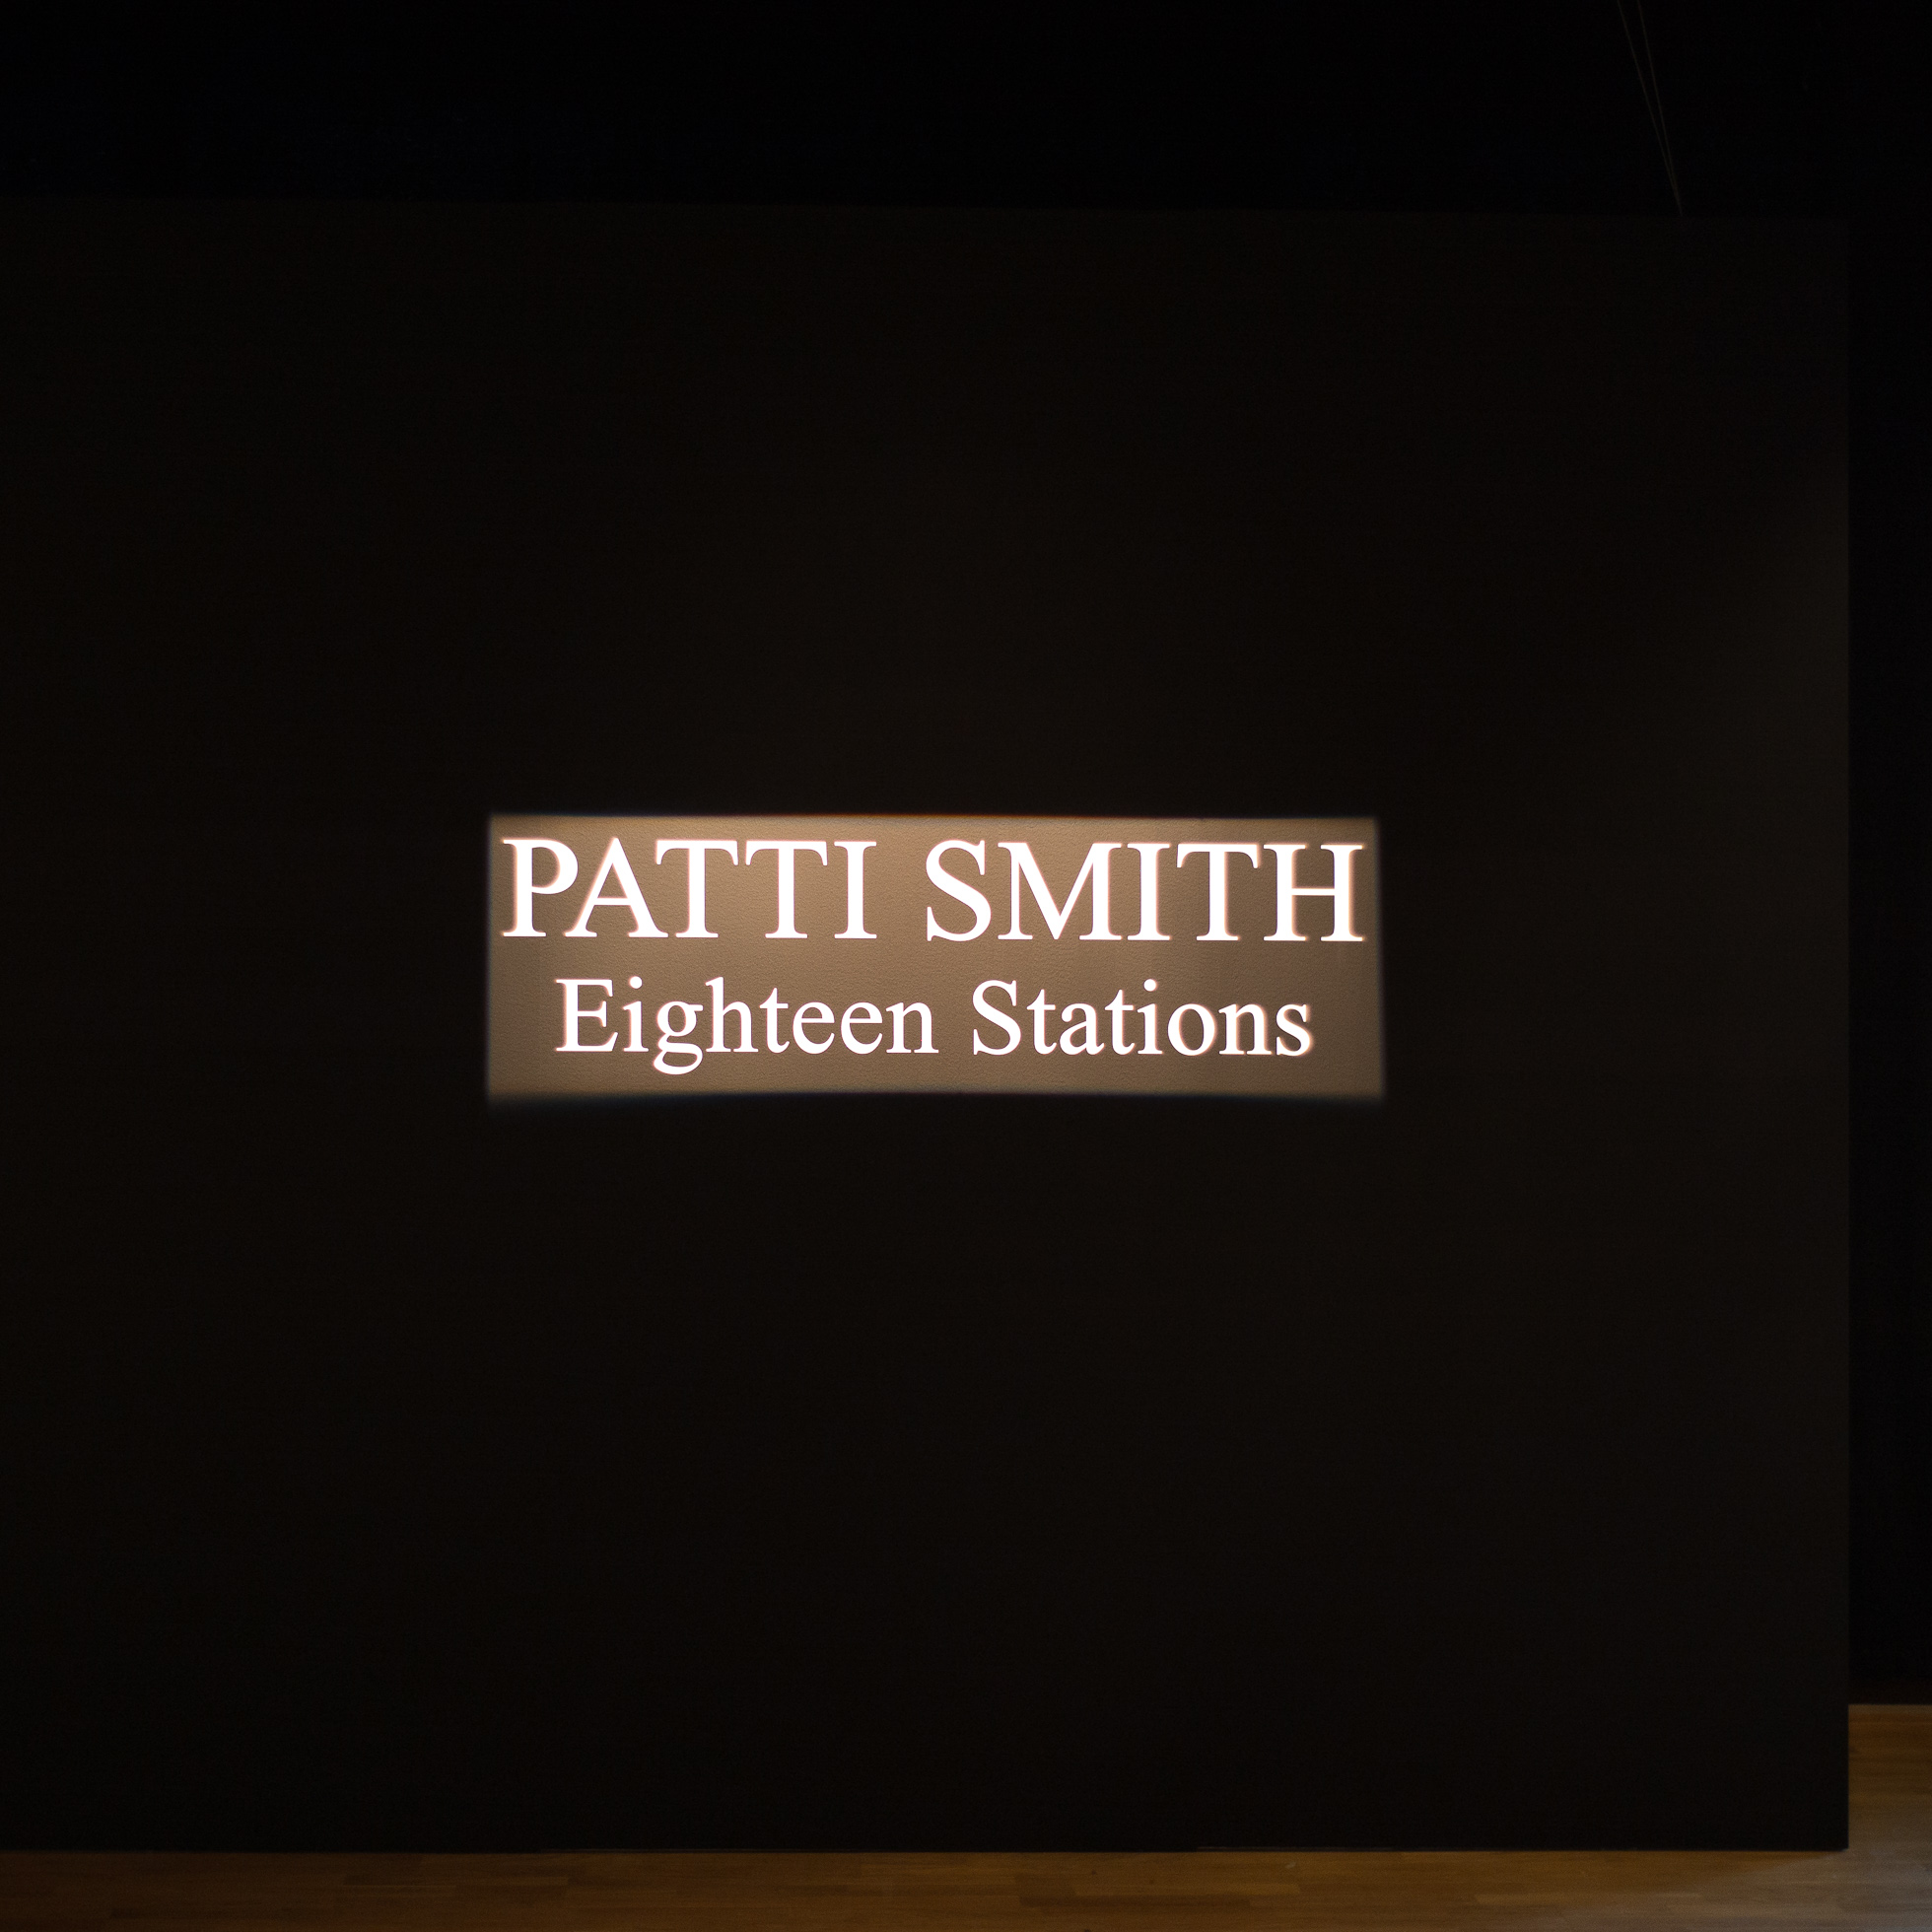 2016-09-24-patti-smith-kulturhuset_2016-09-24_max-dahlstrand_0018-0082